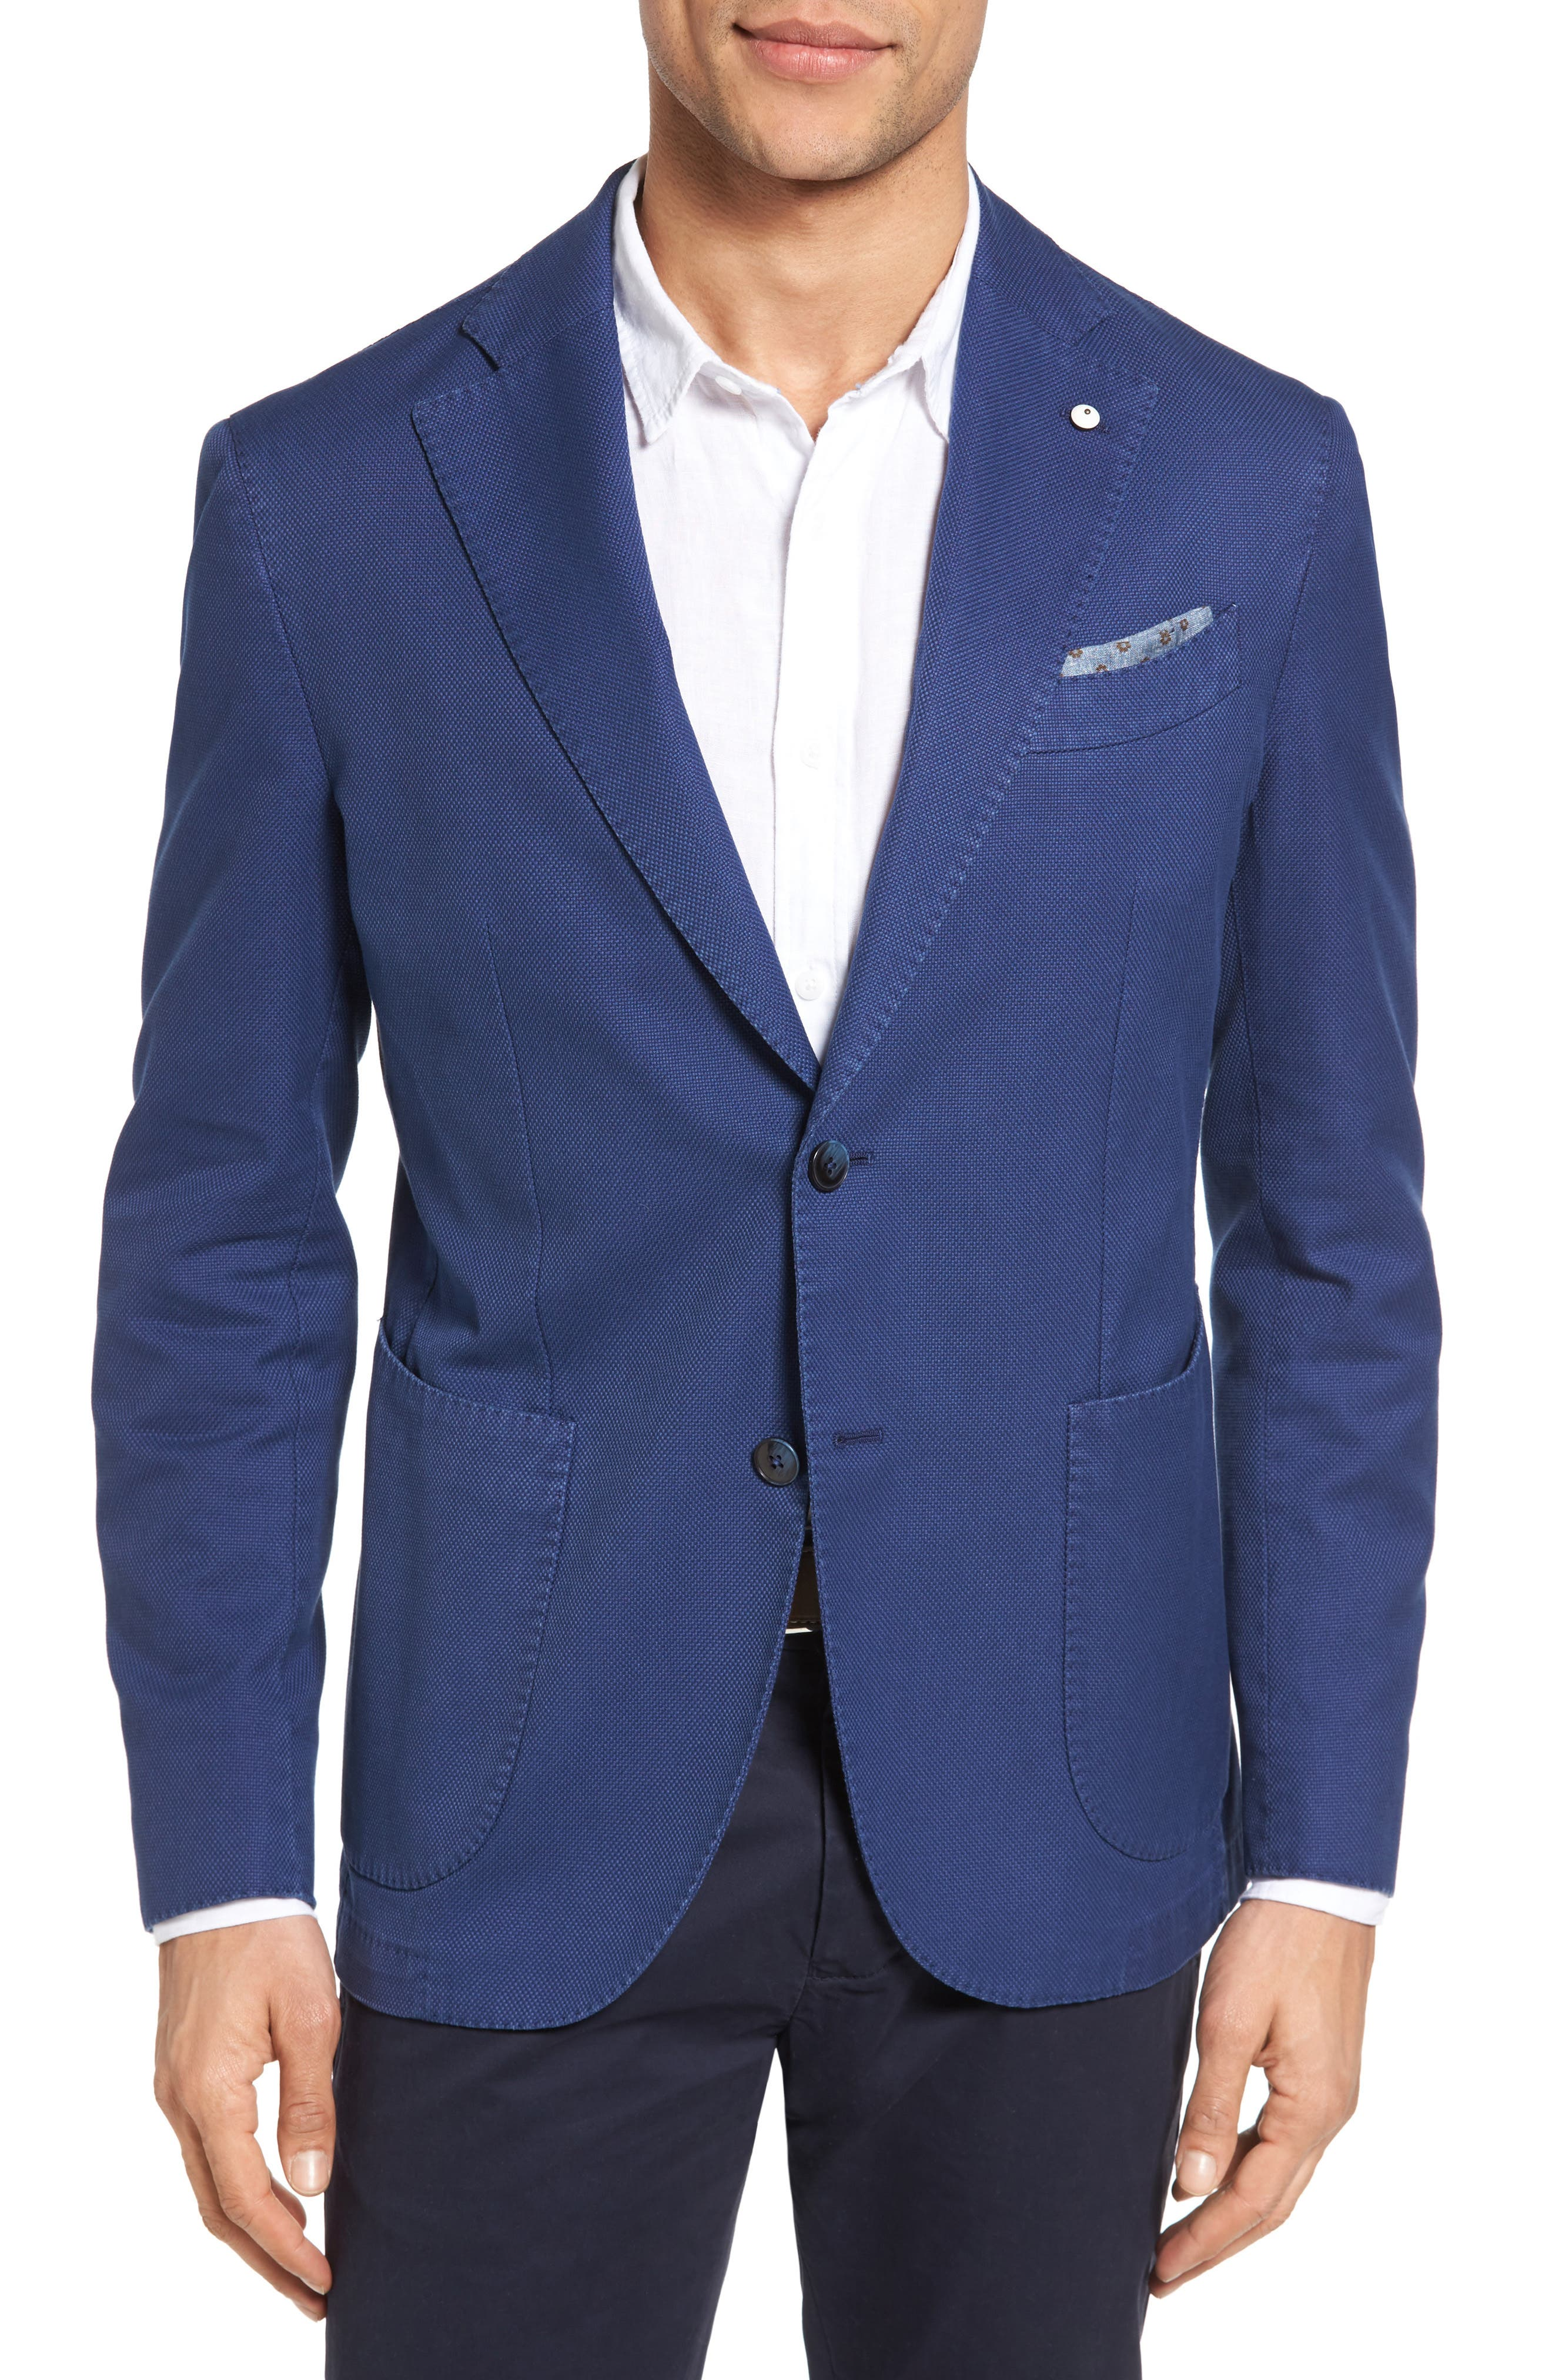 L.B.M. 1911 Unconstructed Classic Fit Cotton Blazer